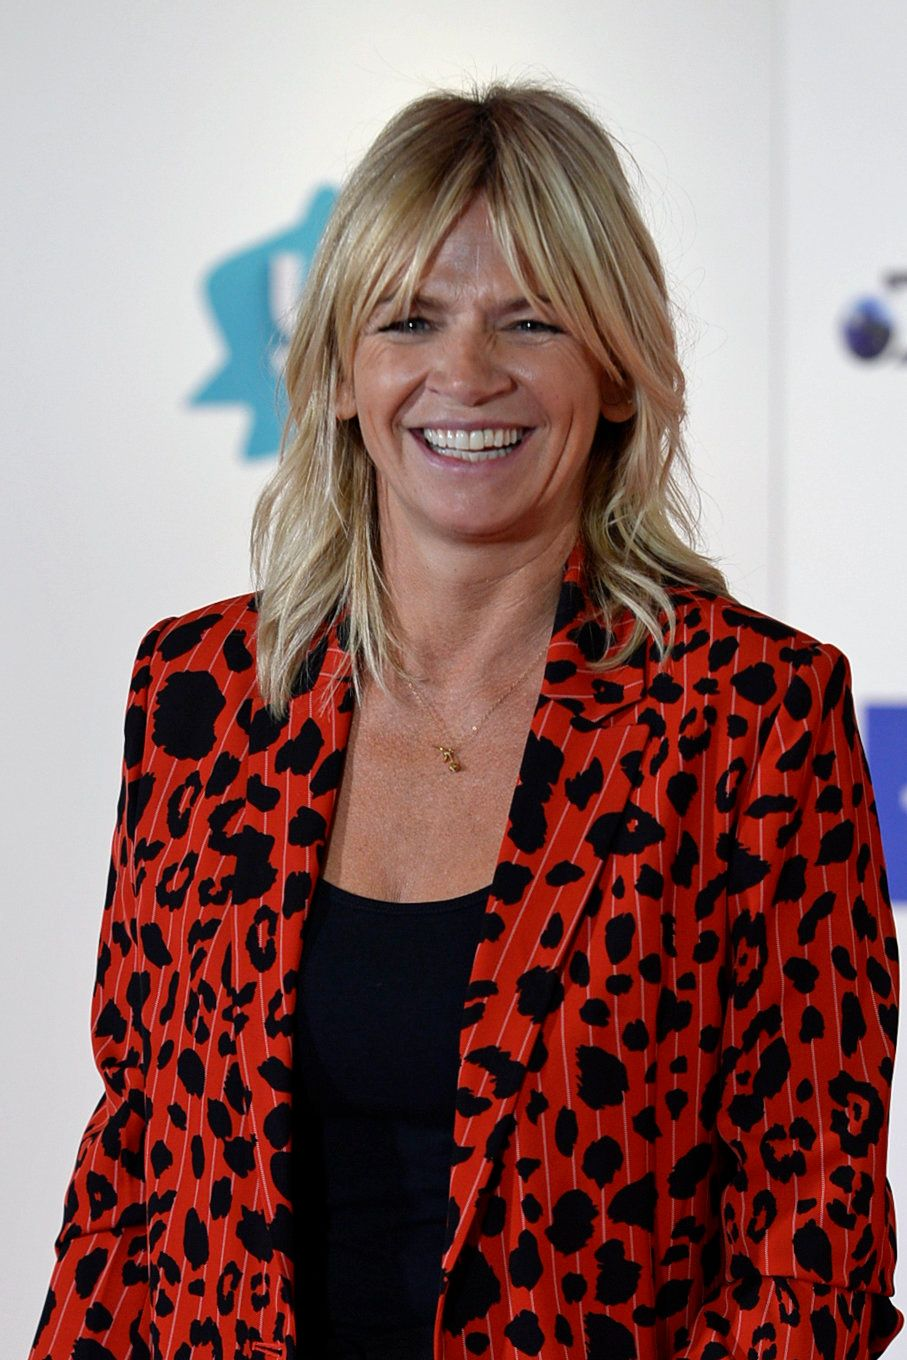 Zoe Ball Confirmed To Replace Chris Evans As Radio 2 Breakfast Show